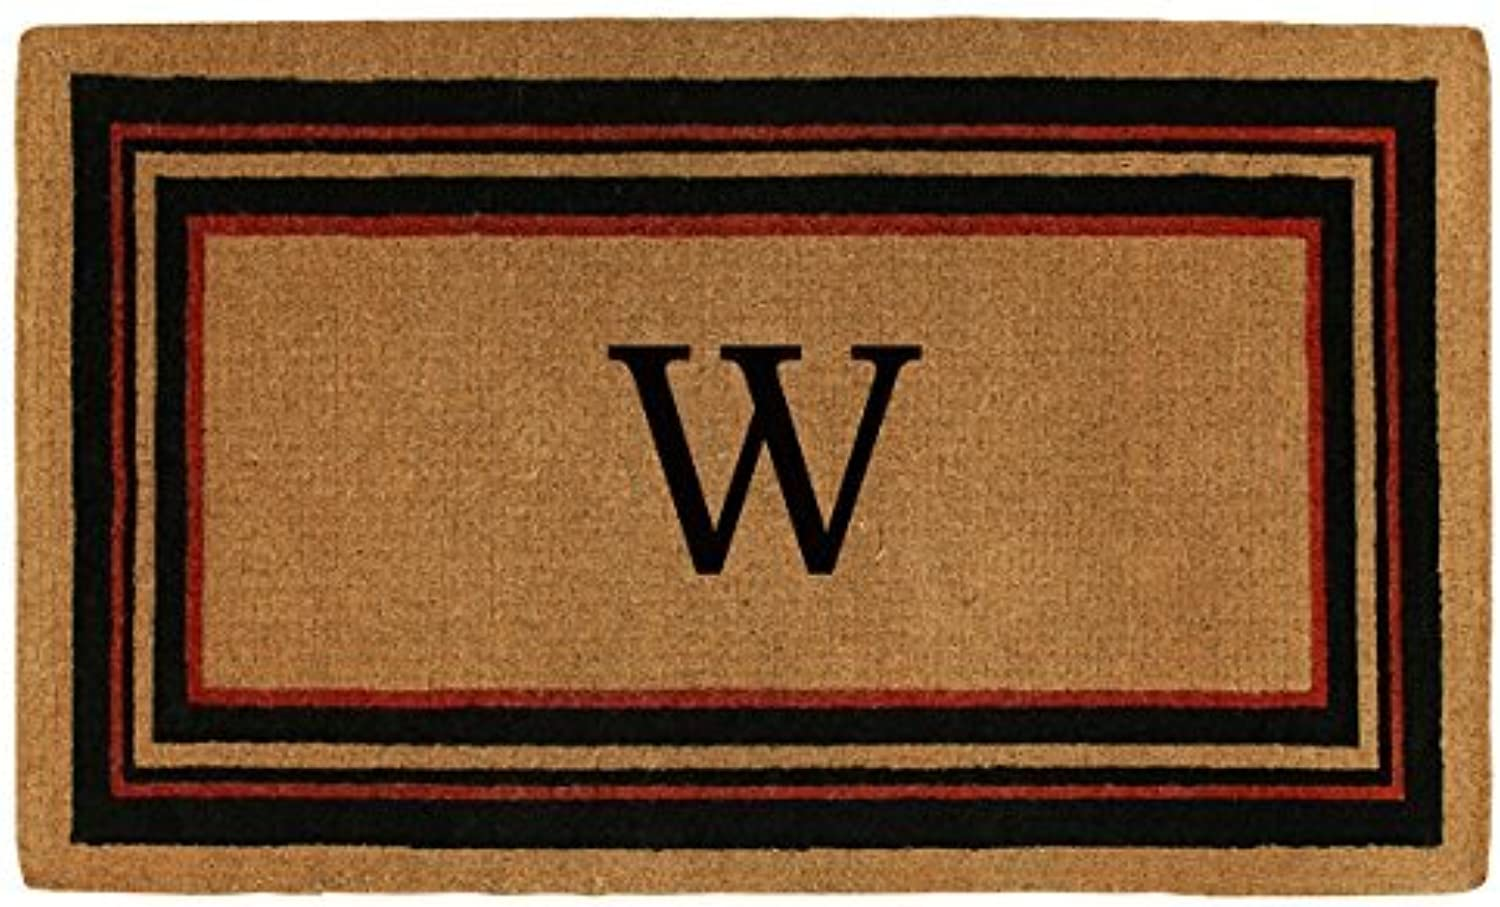 Home & More 180061830W Esquire Extra-Thick Doormat, 18  x 30  x 1.50 , Monogrammed Letter W, Natural Black Red